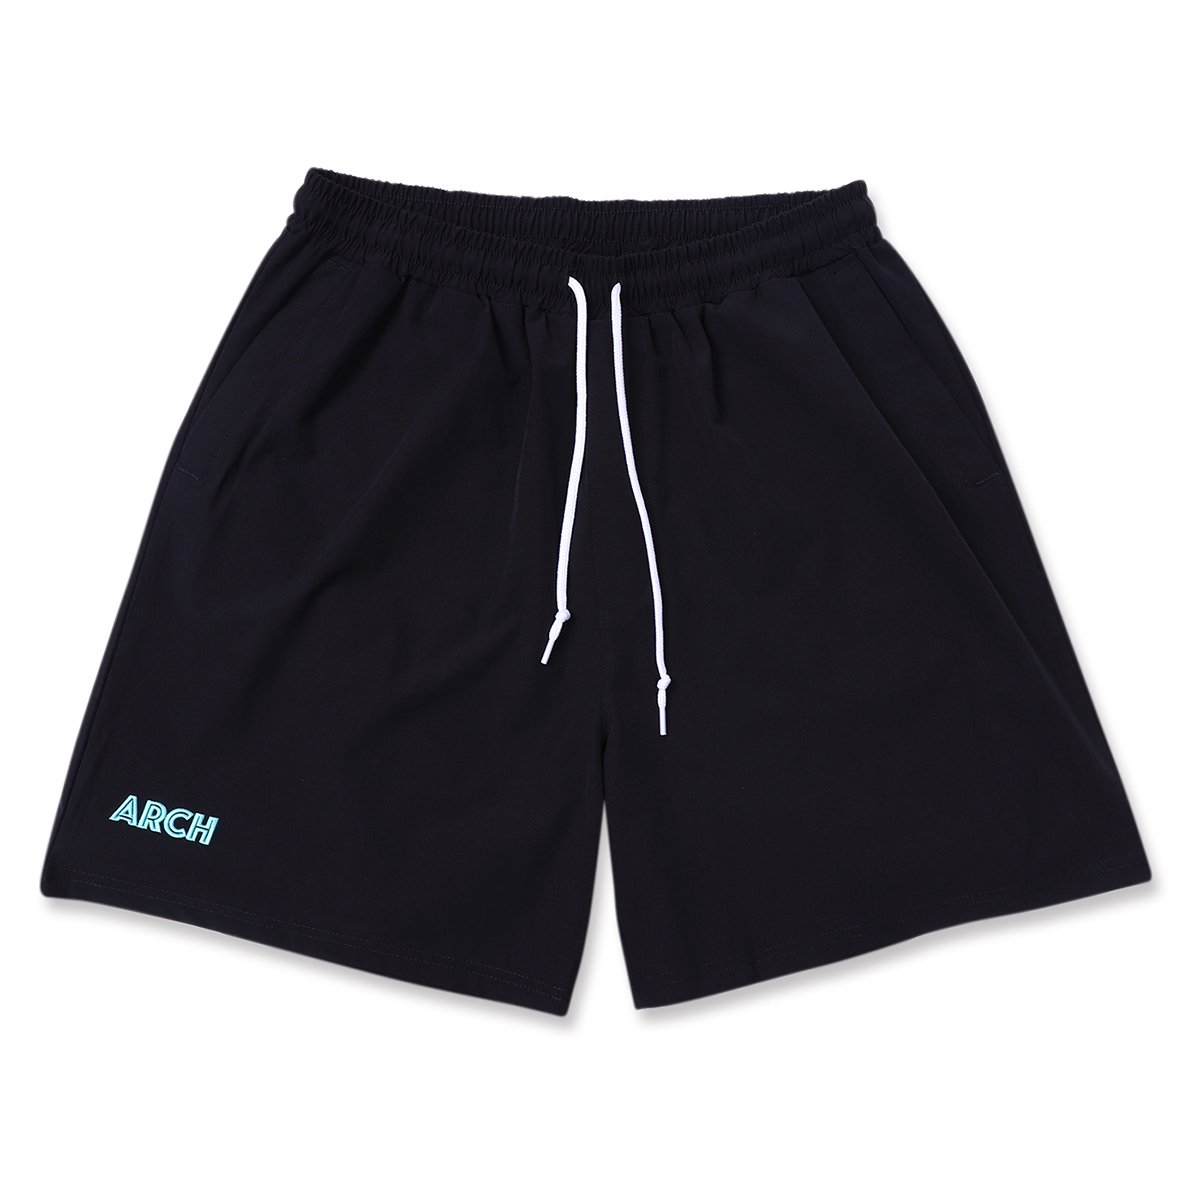 stretch nylon short pants 【black/mint】